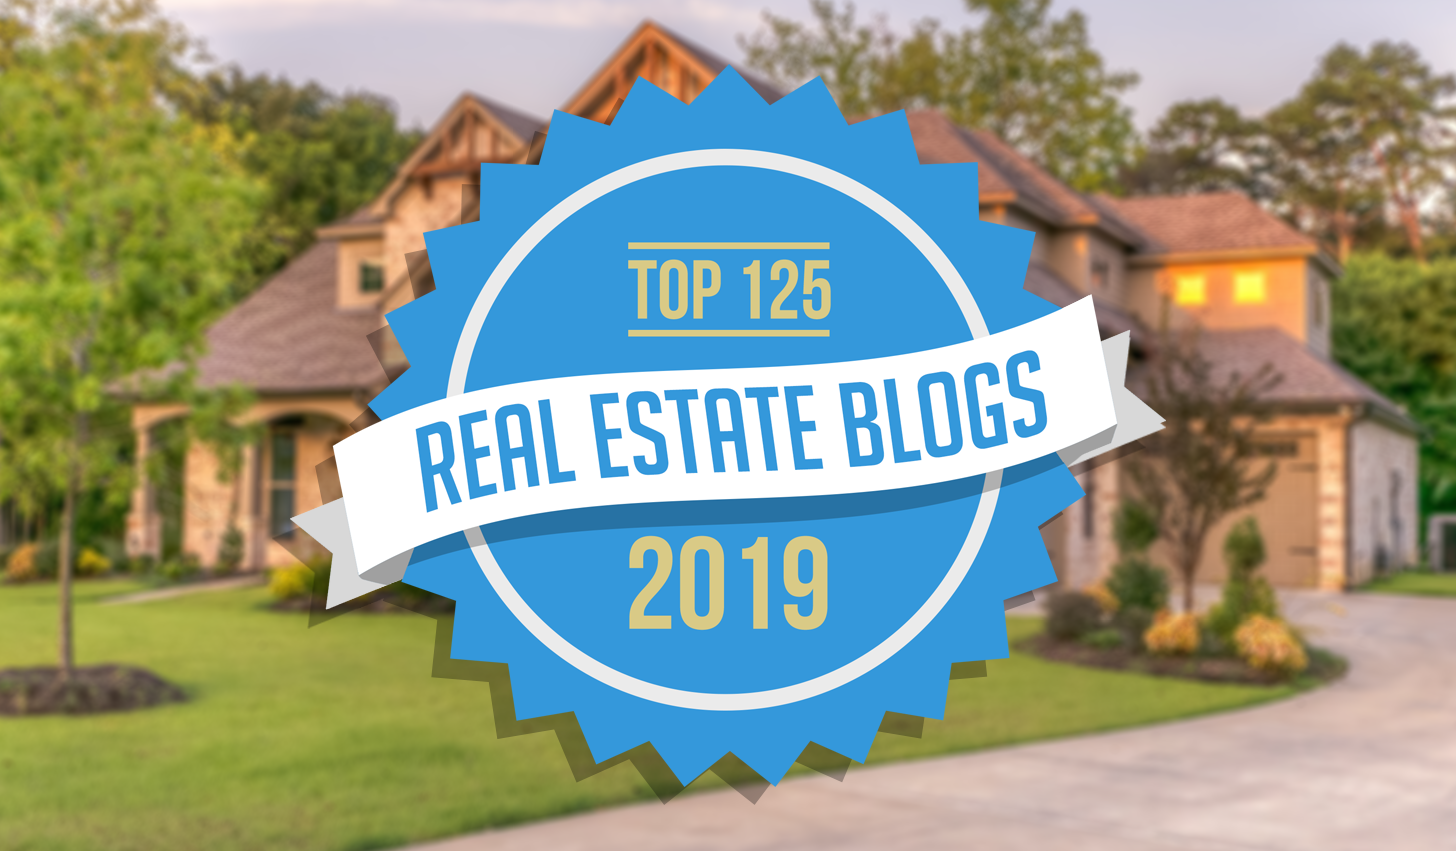 The Top 125 Real Estate Blogs in 2019